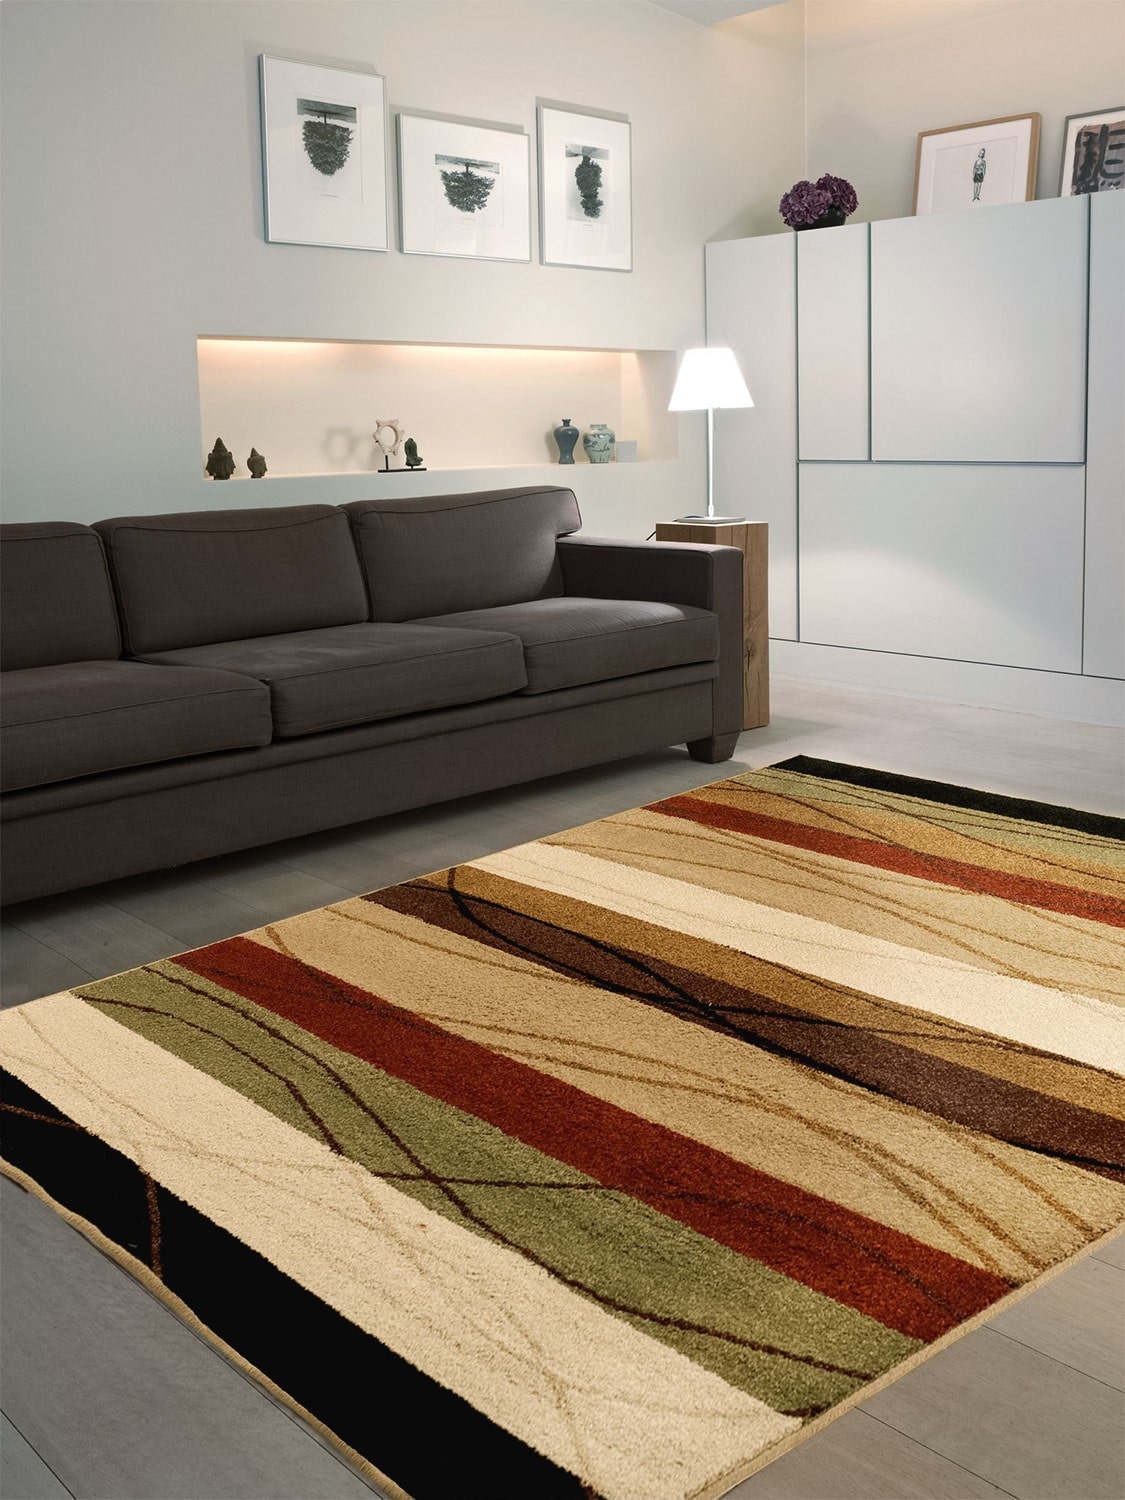 Tonal Striped Area Rug – 7' x 10'